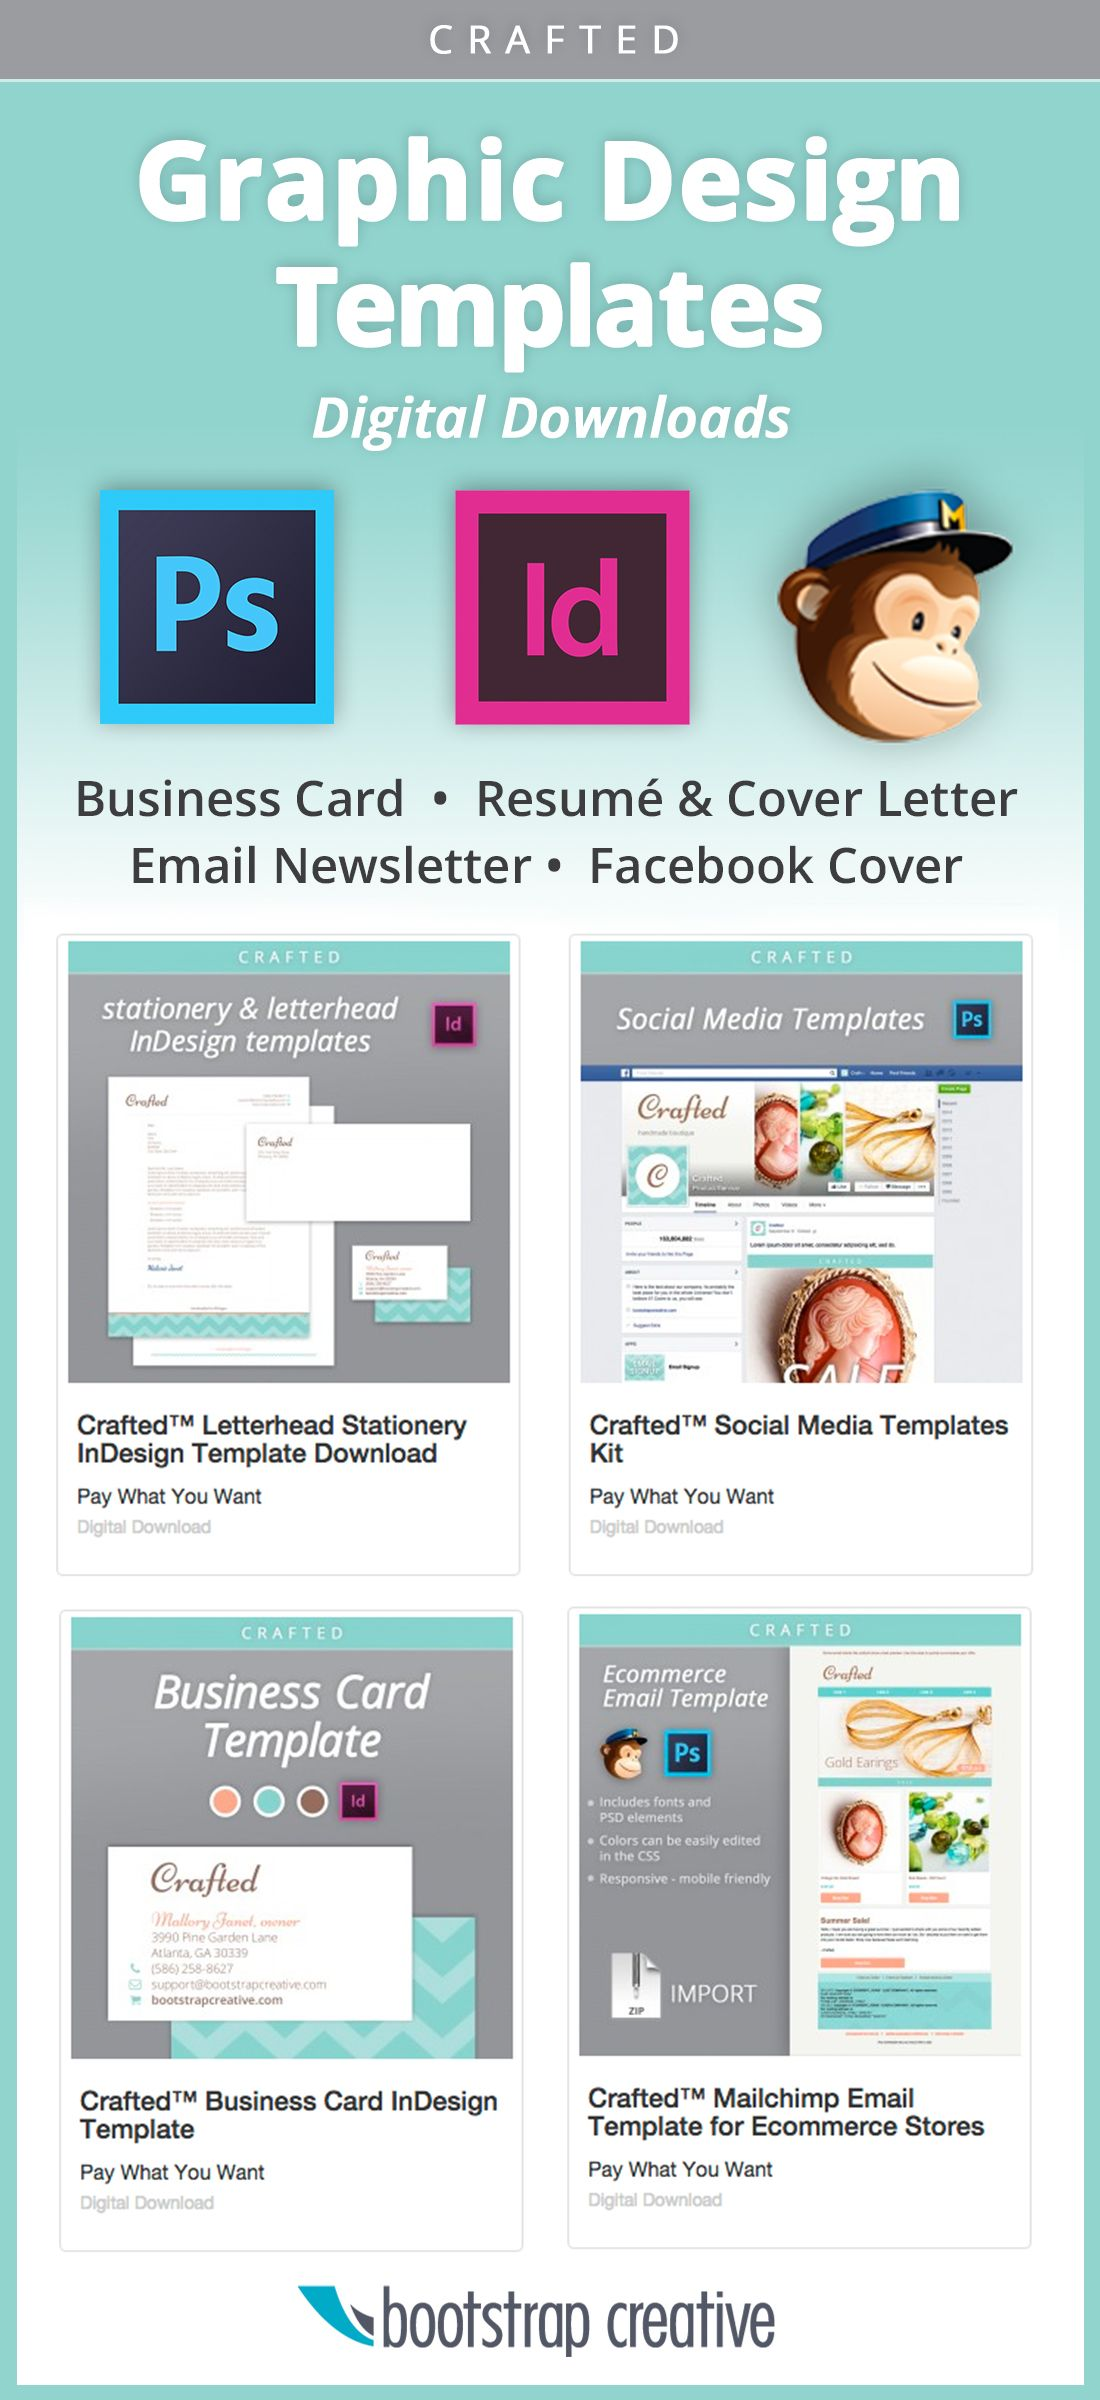 Email Newsletter Template Business Card Template Social Media - Business card template indesign